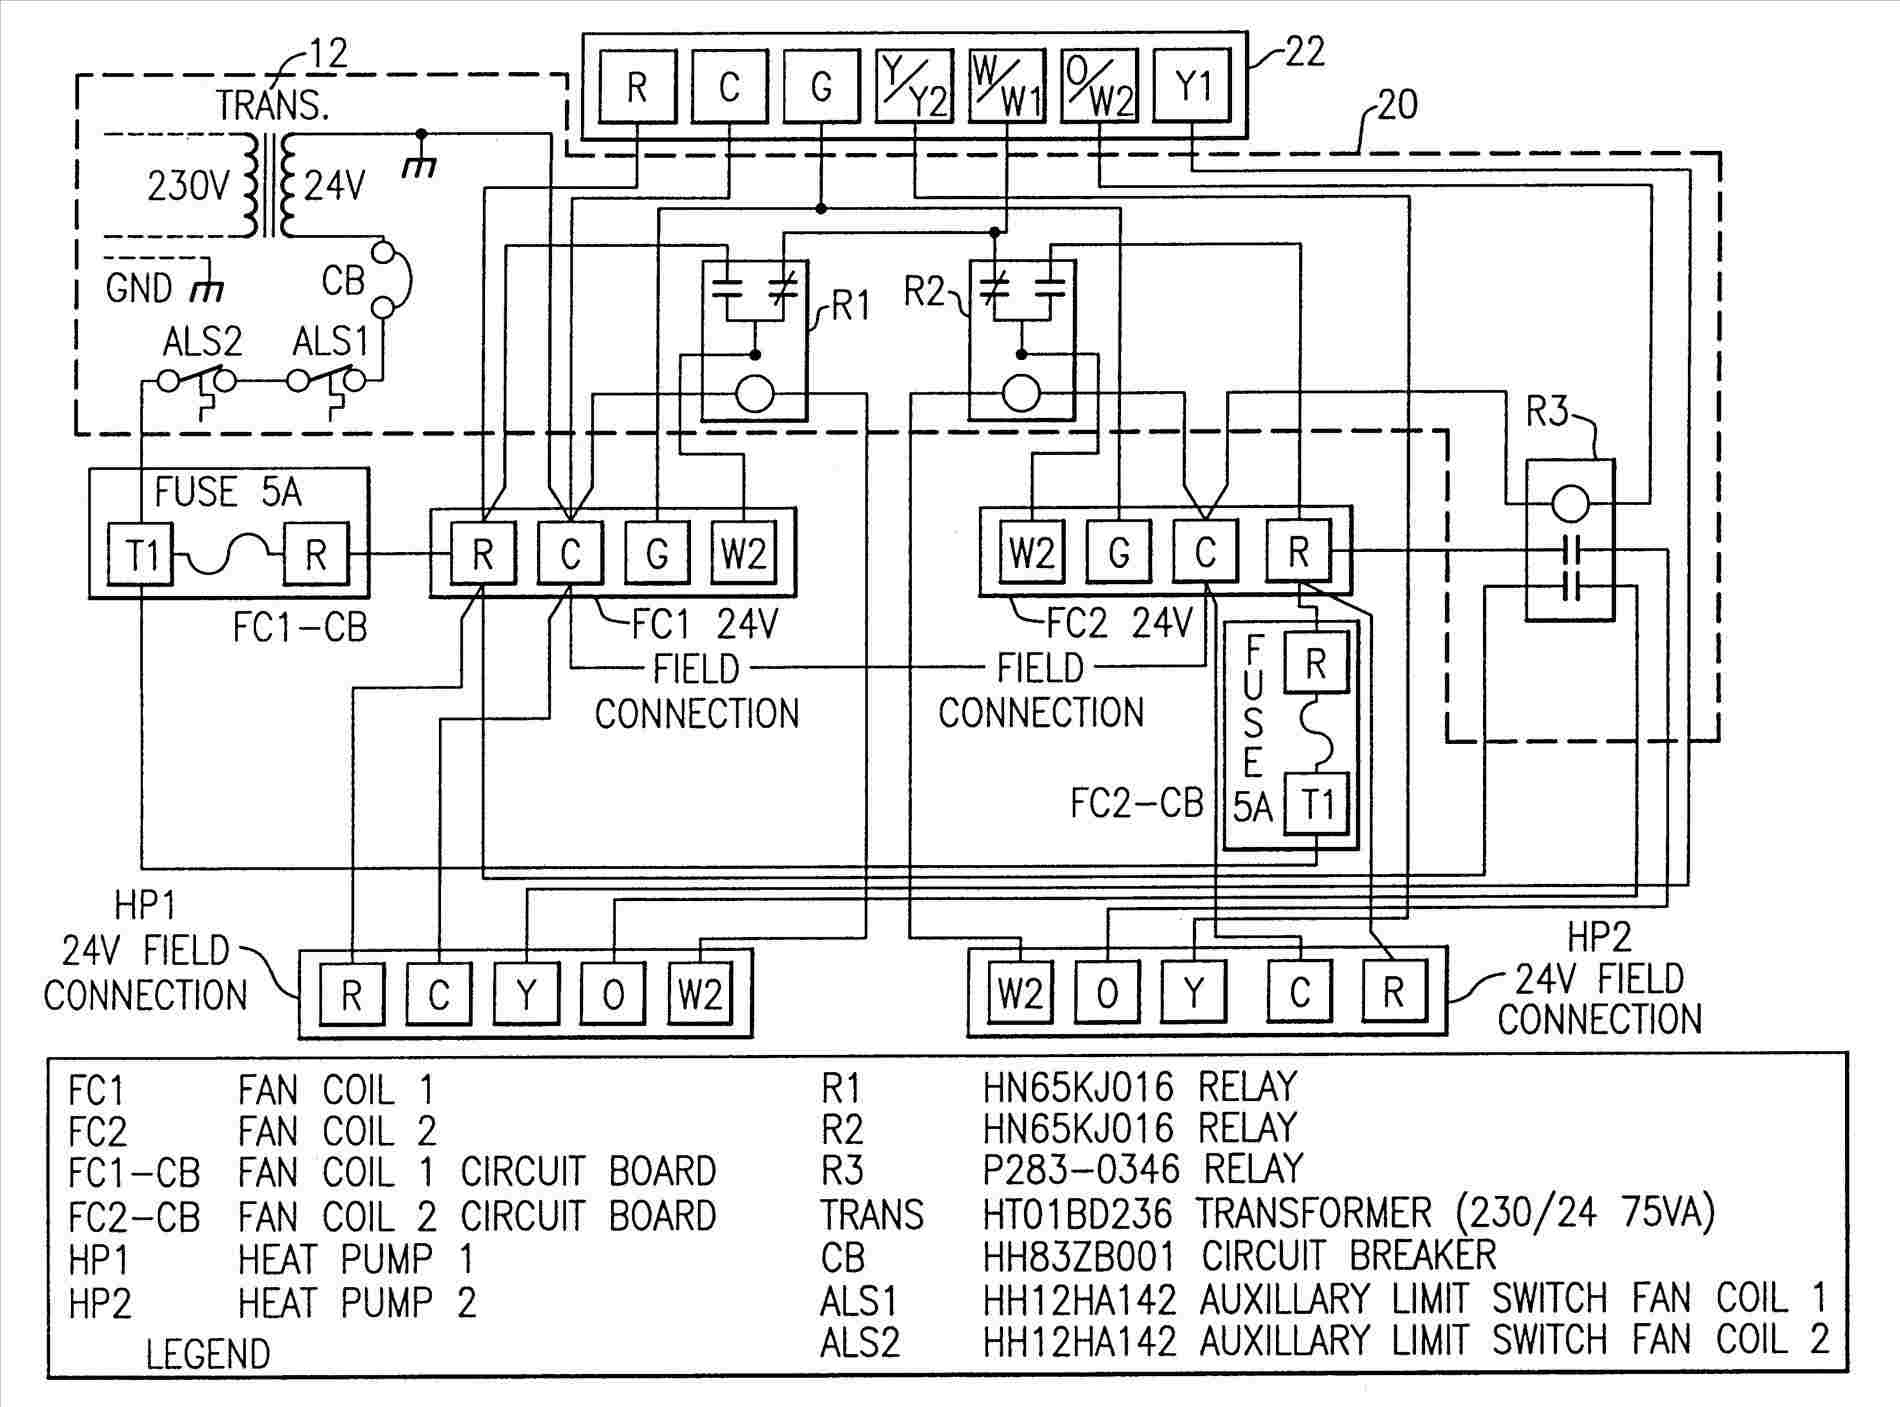 Singer Electric Furnace Wiring Diagram - Wiring Diagram Schema - Gas Furnace Wiring Diagram